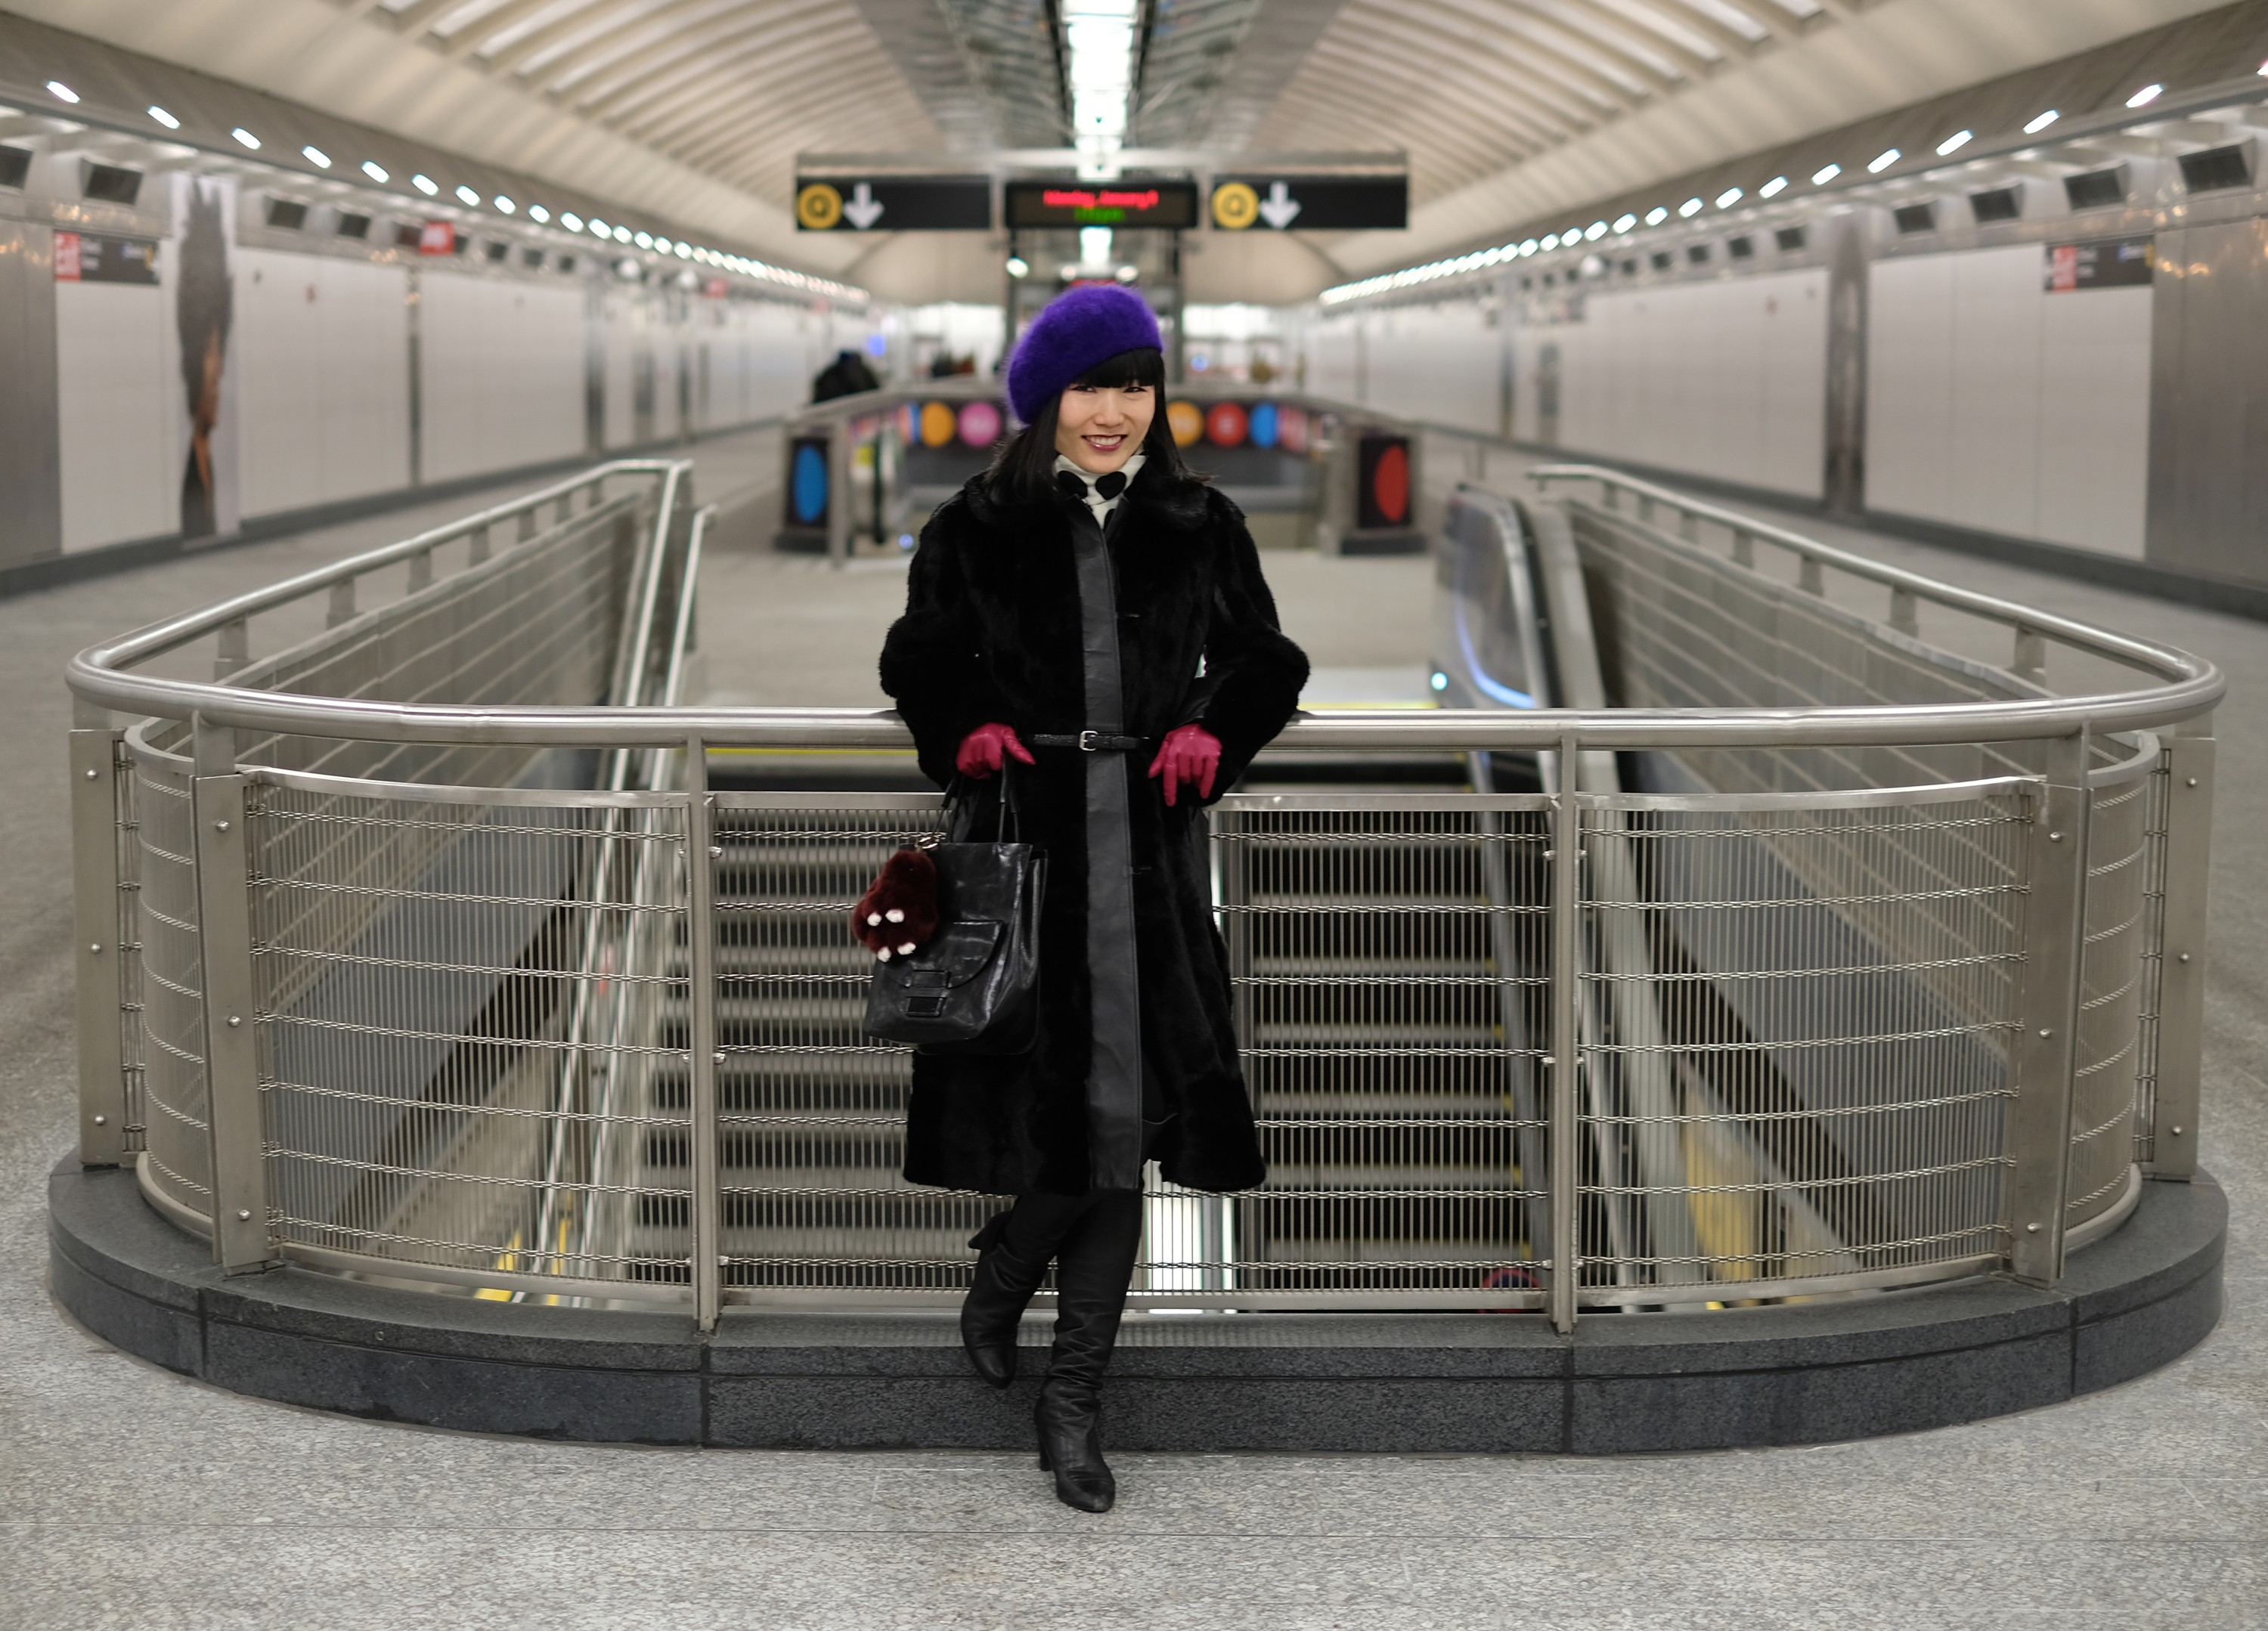 Japanese girl in black coat in new subway station